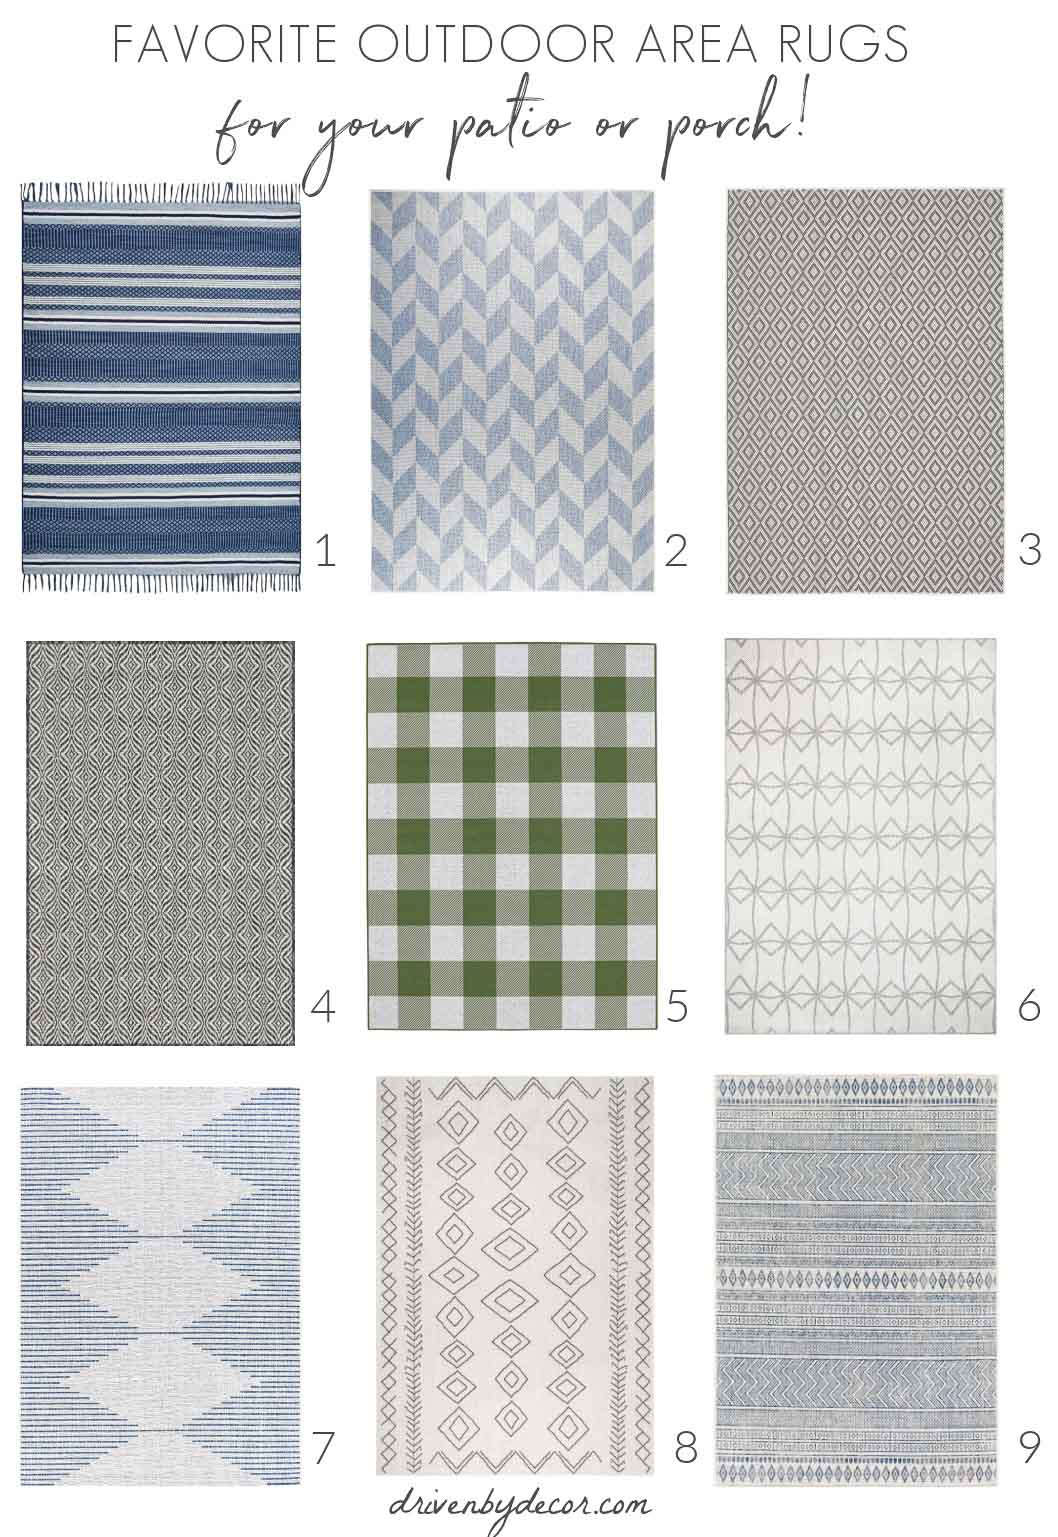 Outdoor rugs are one of my favorite outdoor decor pieces!